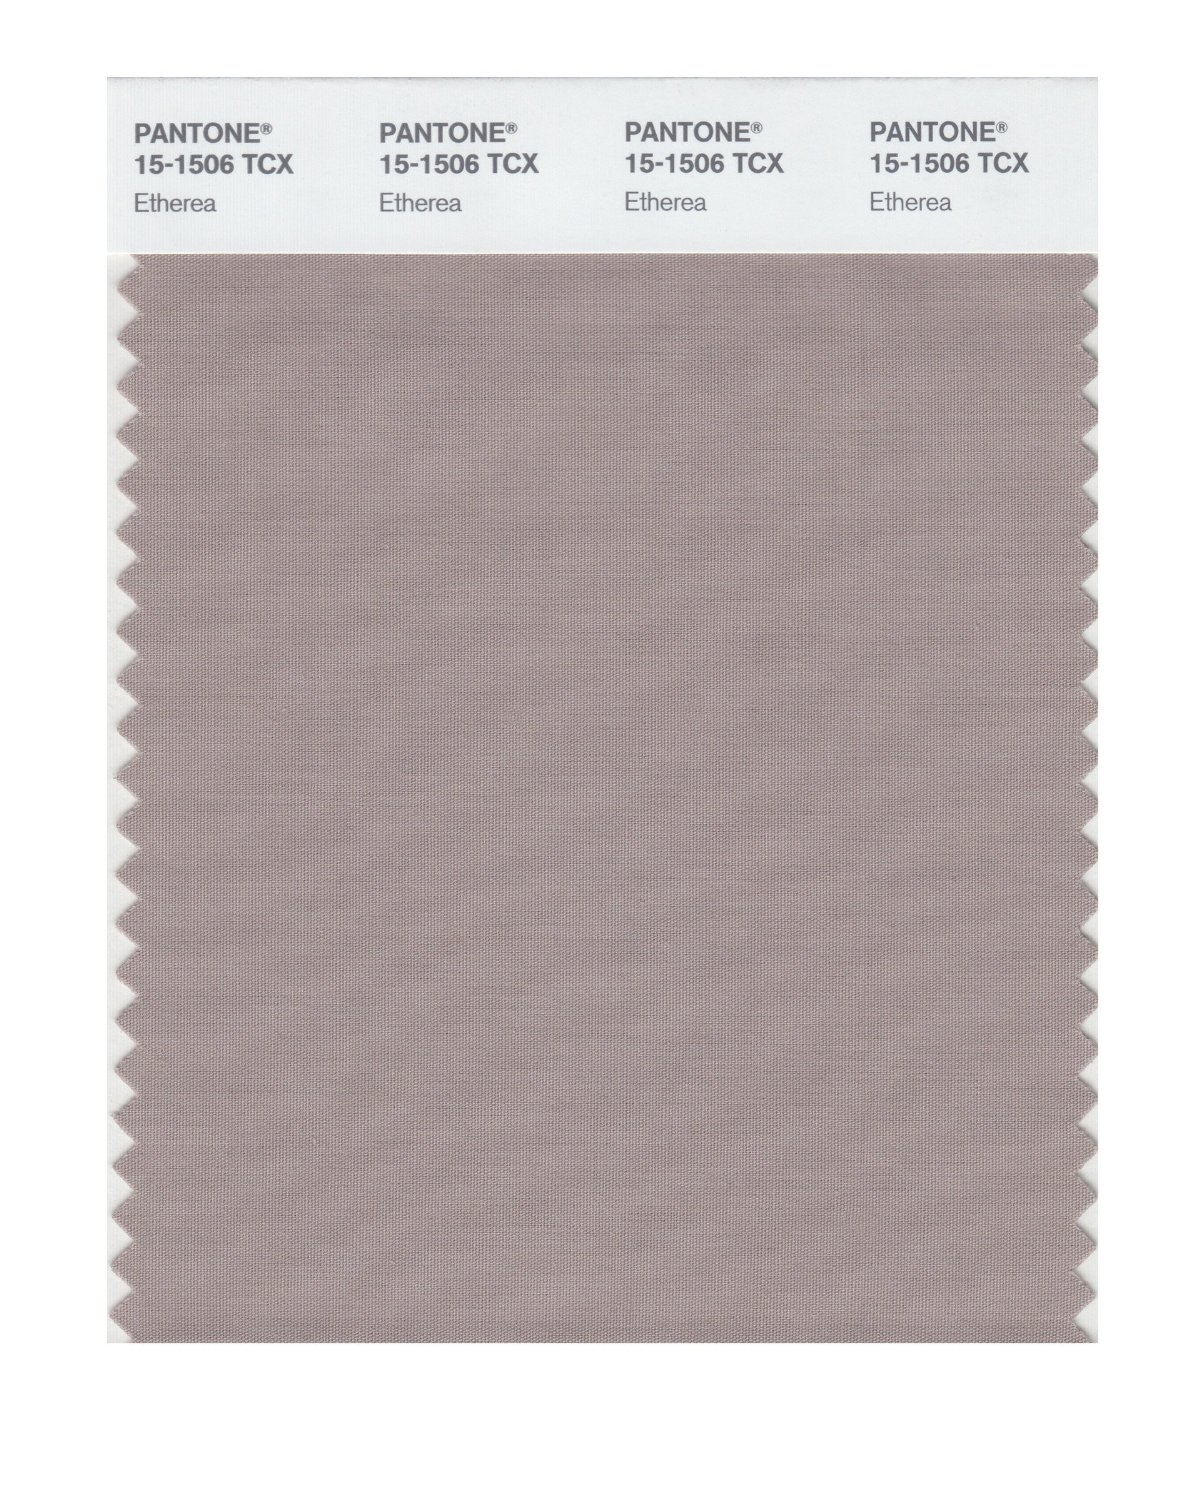 Pantone Smart Swatch 15-1506 Etherea